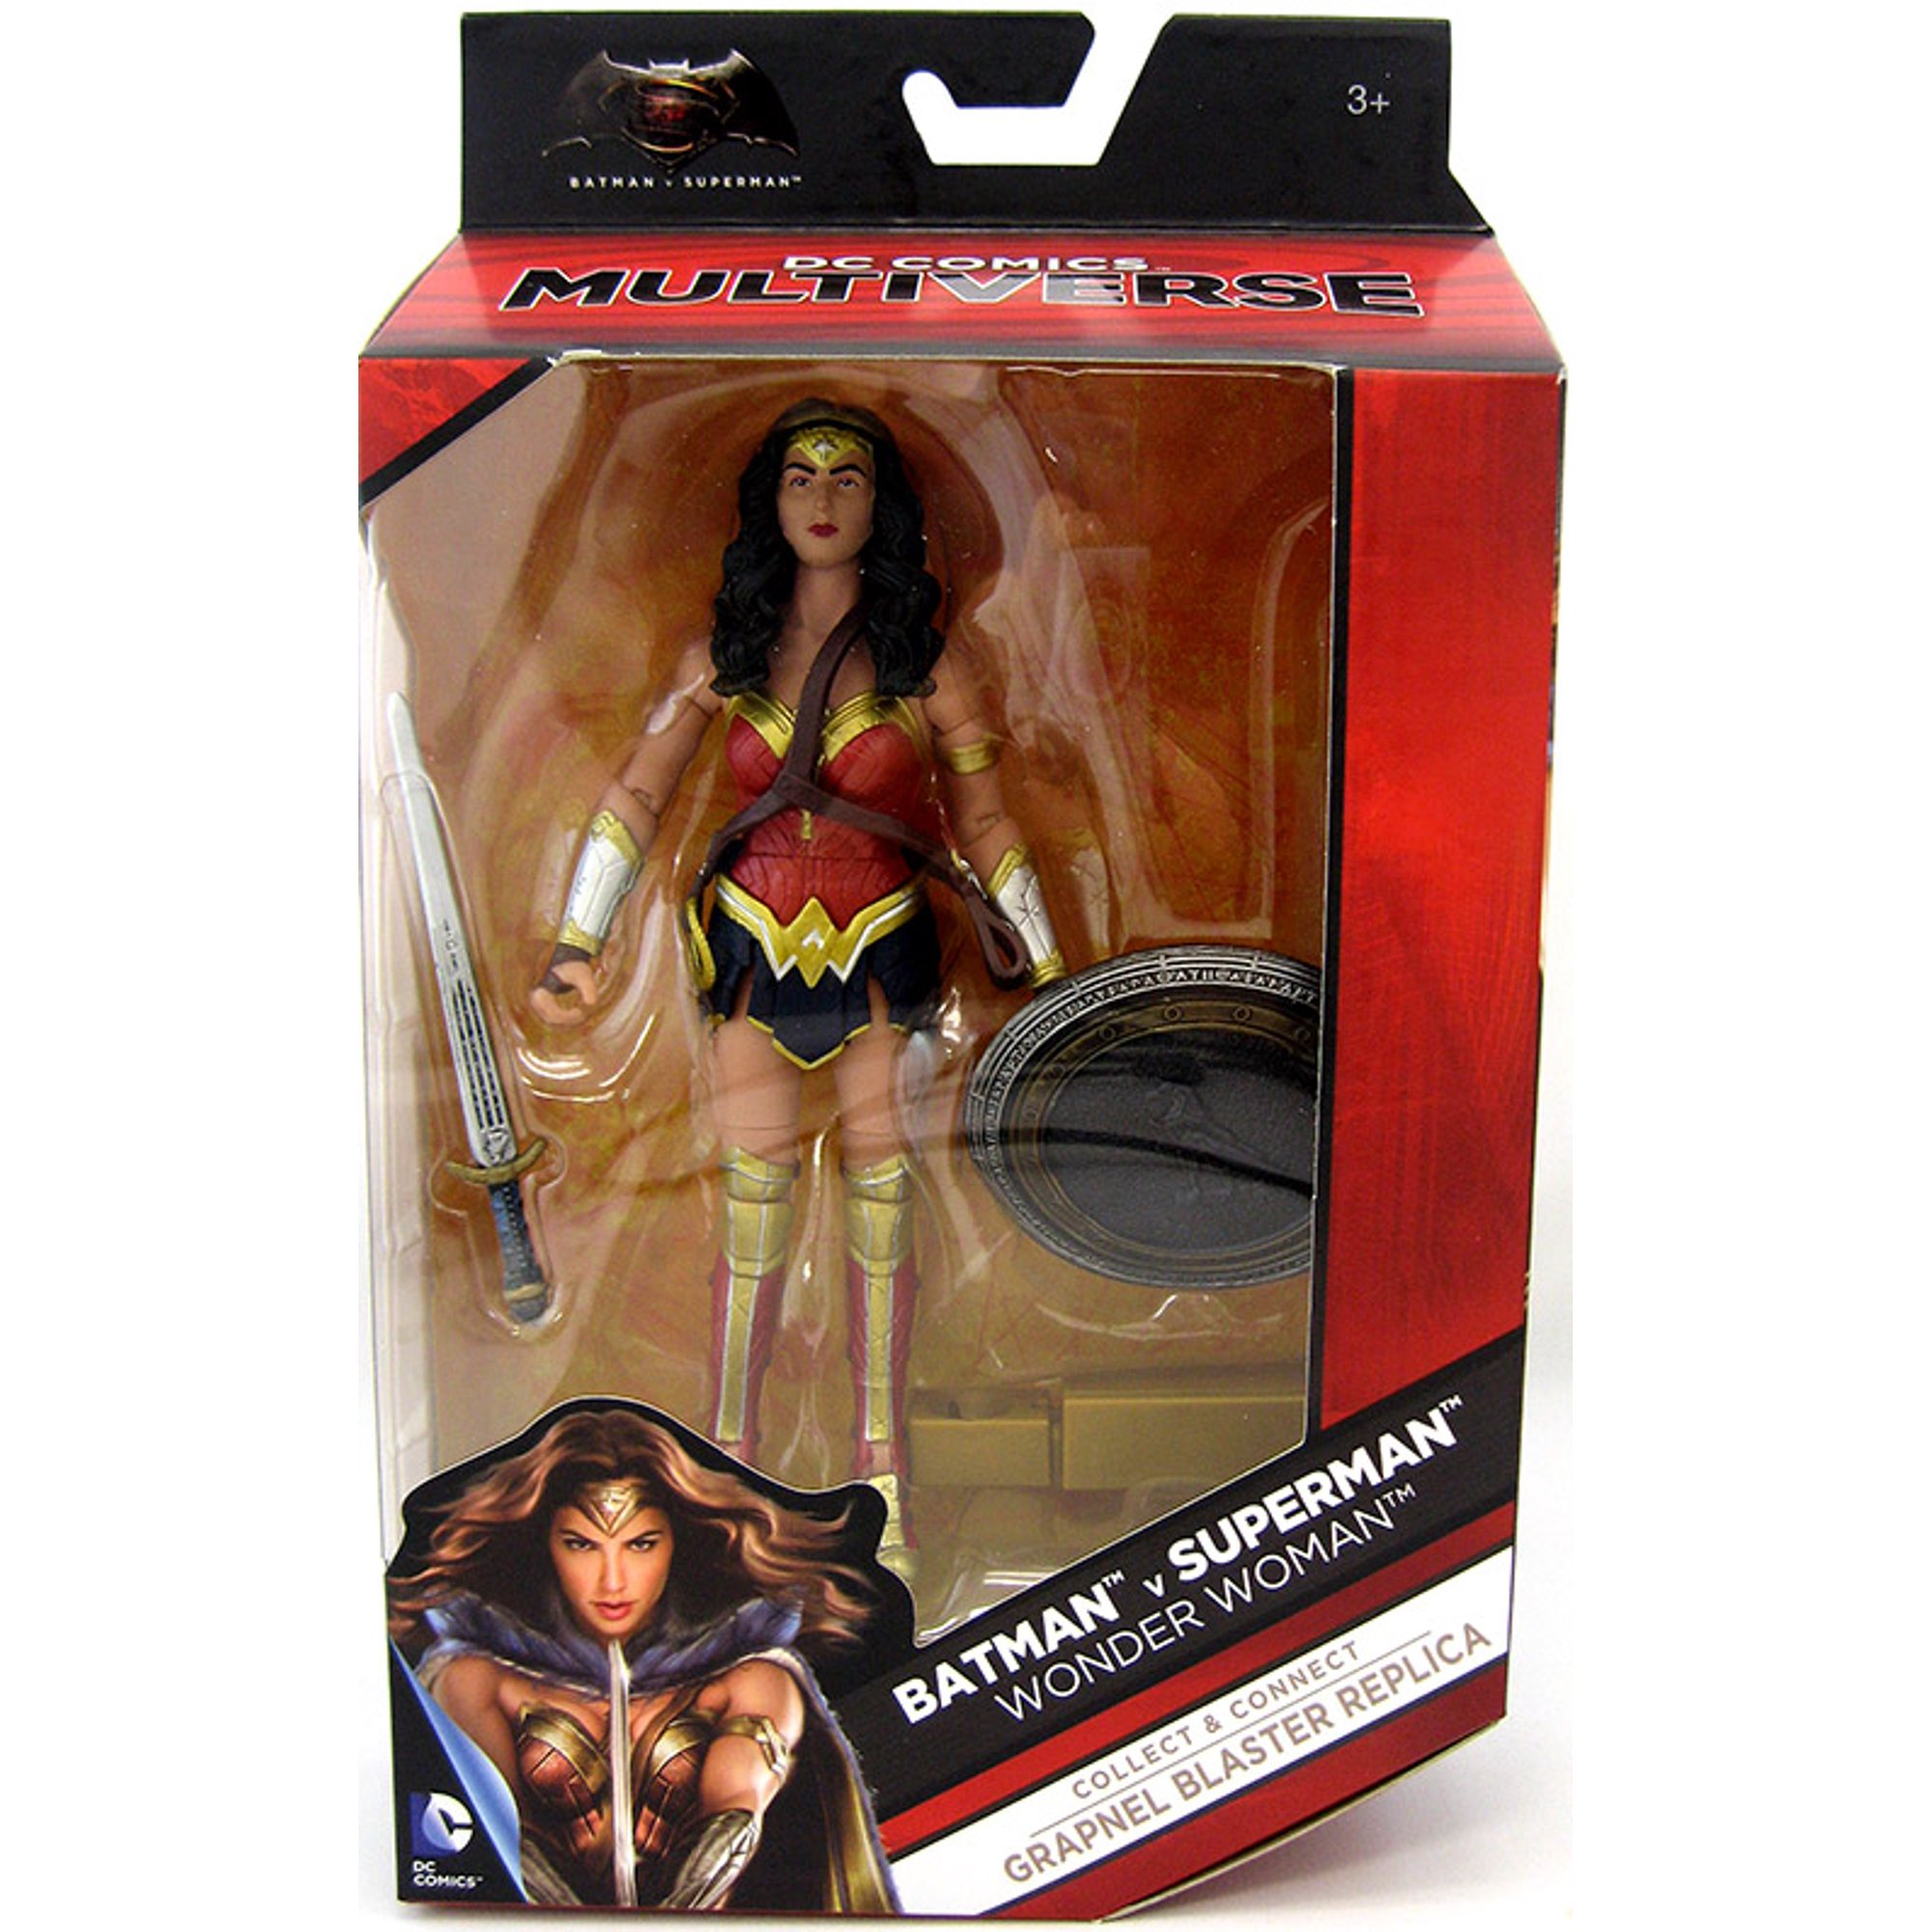 9f452c6fe75 DC Comics Multiverse 6 Inch Action Figure Grapnel Blaster Series - Batman V  Superman Wonder Woman  3 of 8